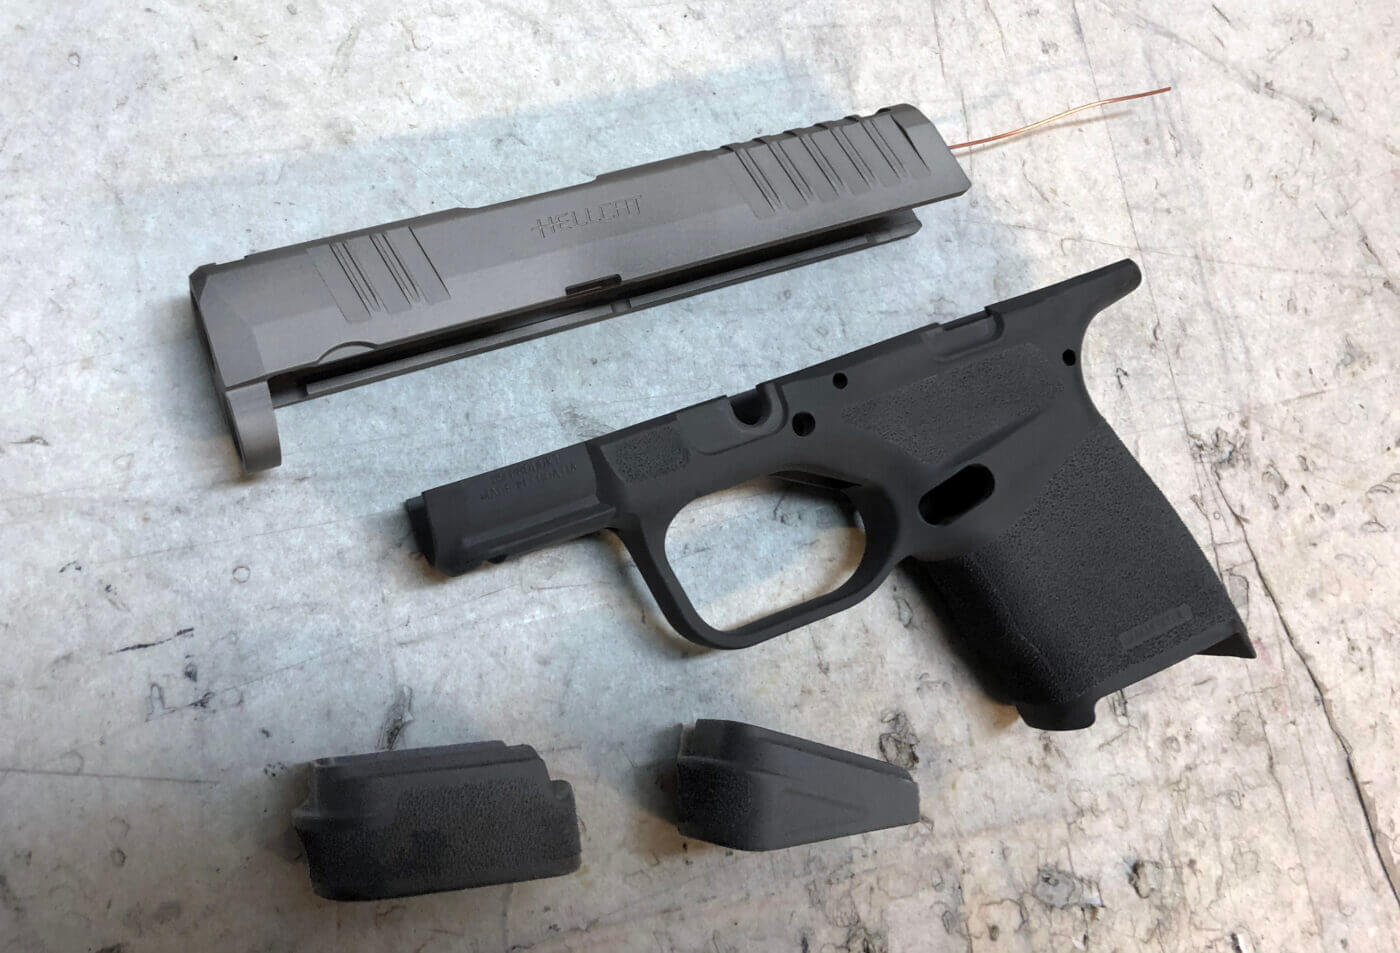 Springfield Hellcat disassembled for cleaning